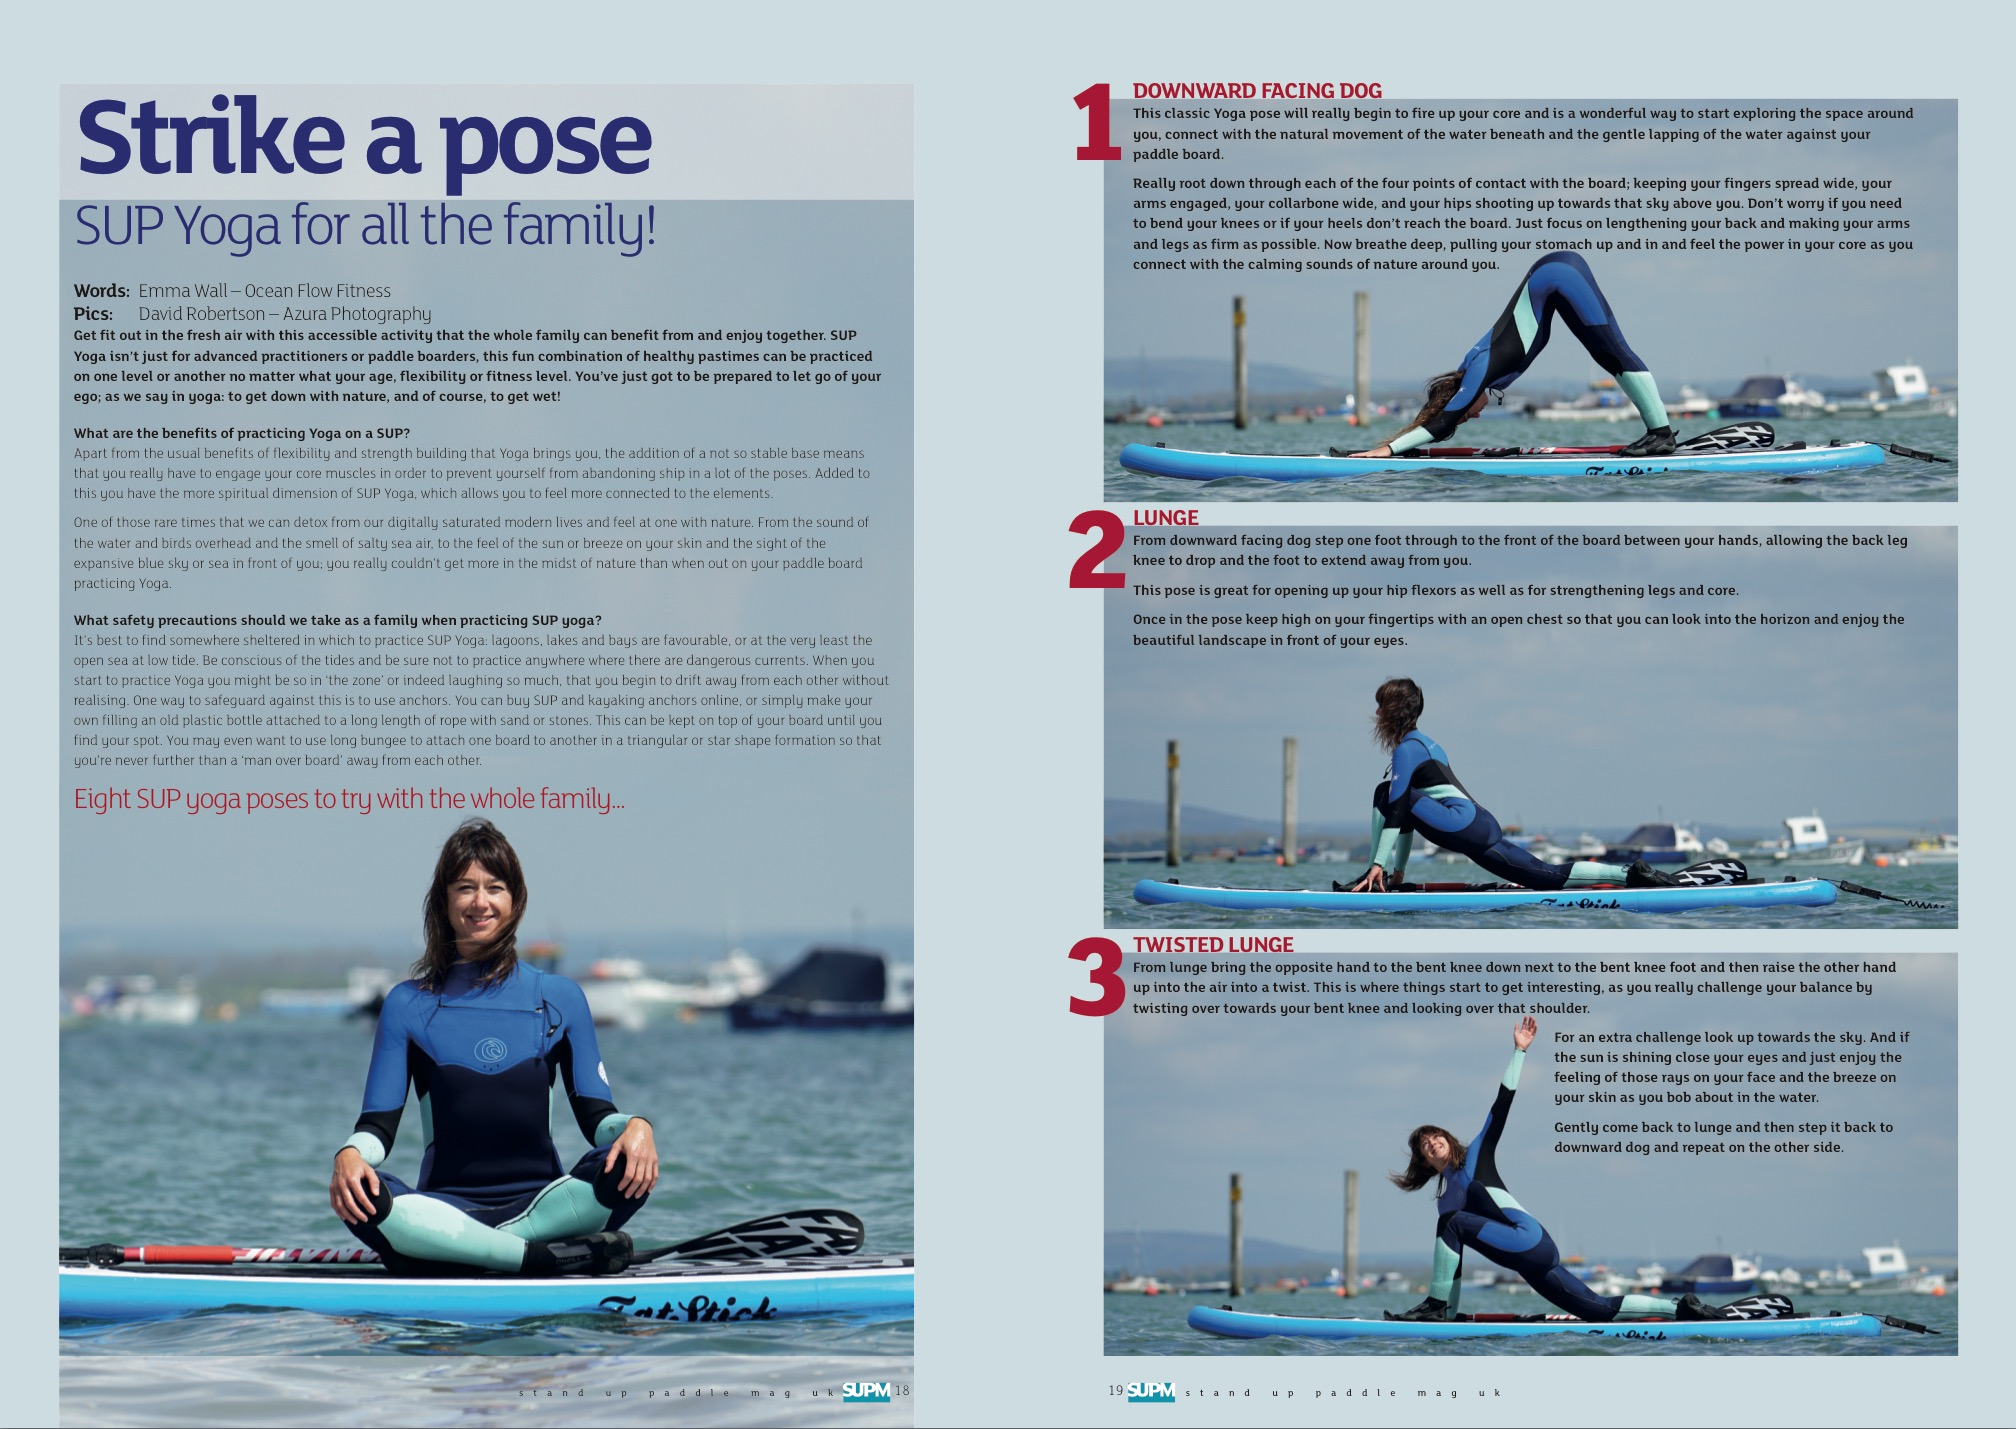 SUP Yoga for all the family